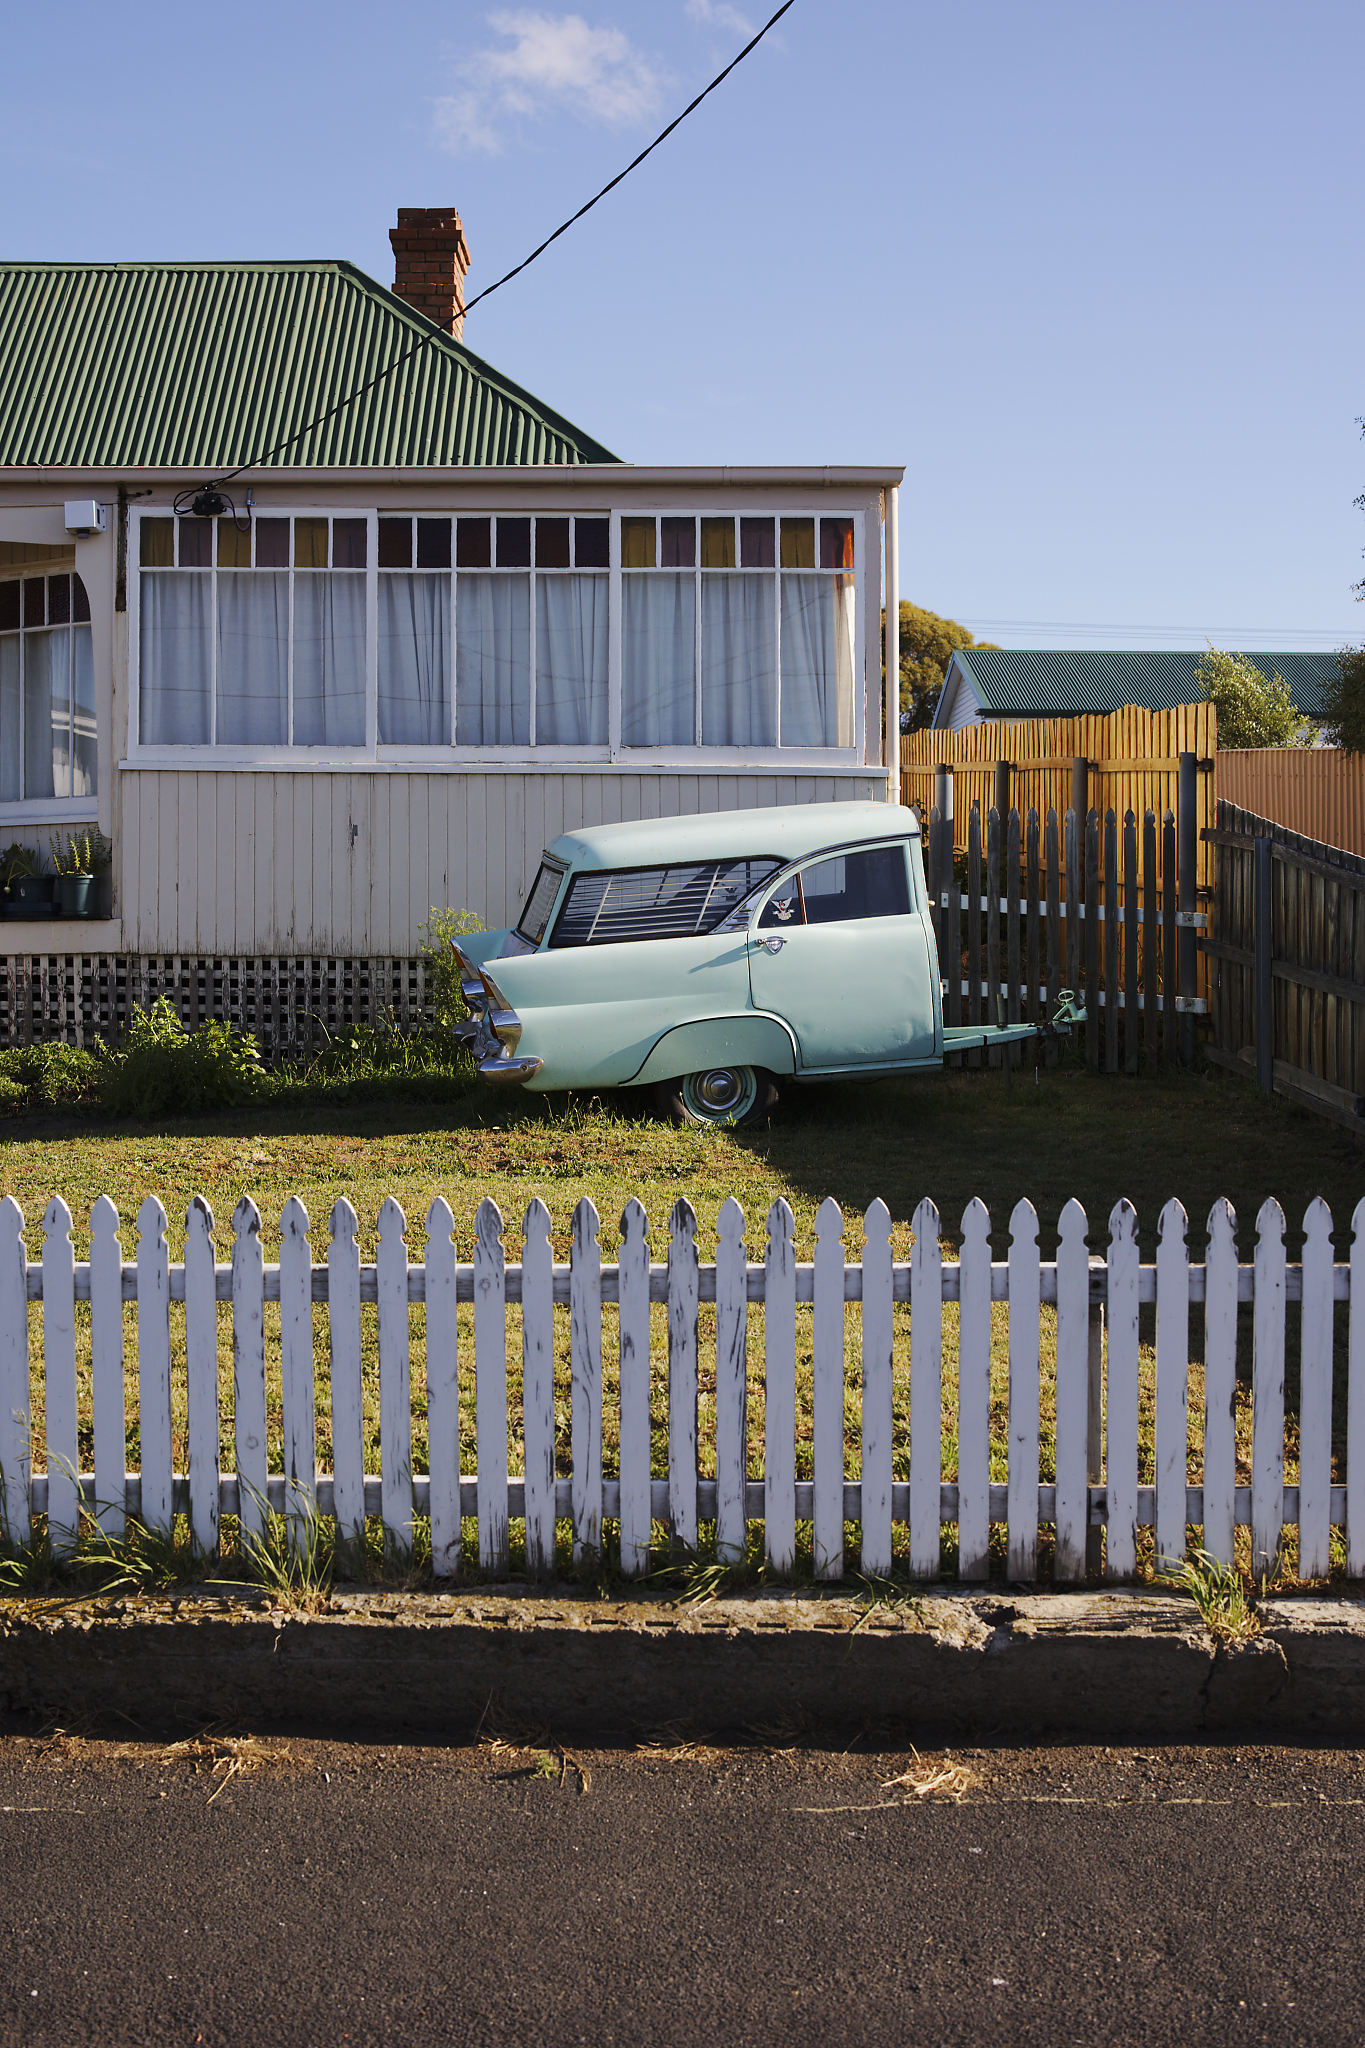 This image was a classic drive-by decision. If I don't stop to shoot, will I regret it? I decided I would. With the late afternoon sun diffused by haze, I was keen to see what shadow detail I could retrieve whilst keeping the colours true. I used the reflective qualities of the weatherboard siding to help capture the pastel shades and great tonal range in colour. It made for a crisp and spring-appropriate composition.   I like shooting high contrast situations, and the Canon EOS R6 and 50mm lens meant I could easily shoot highlights while still capturing the shadows. Using the wide-open RF 50mm f/1.2L USM lens also meant I could move quickly – helpful, as I was standing in the middle of the road.